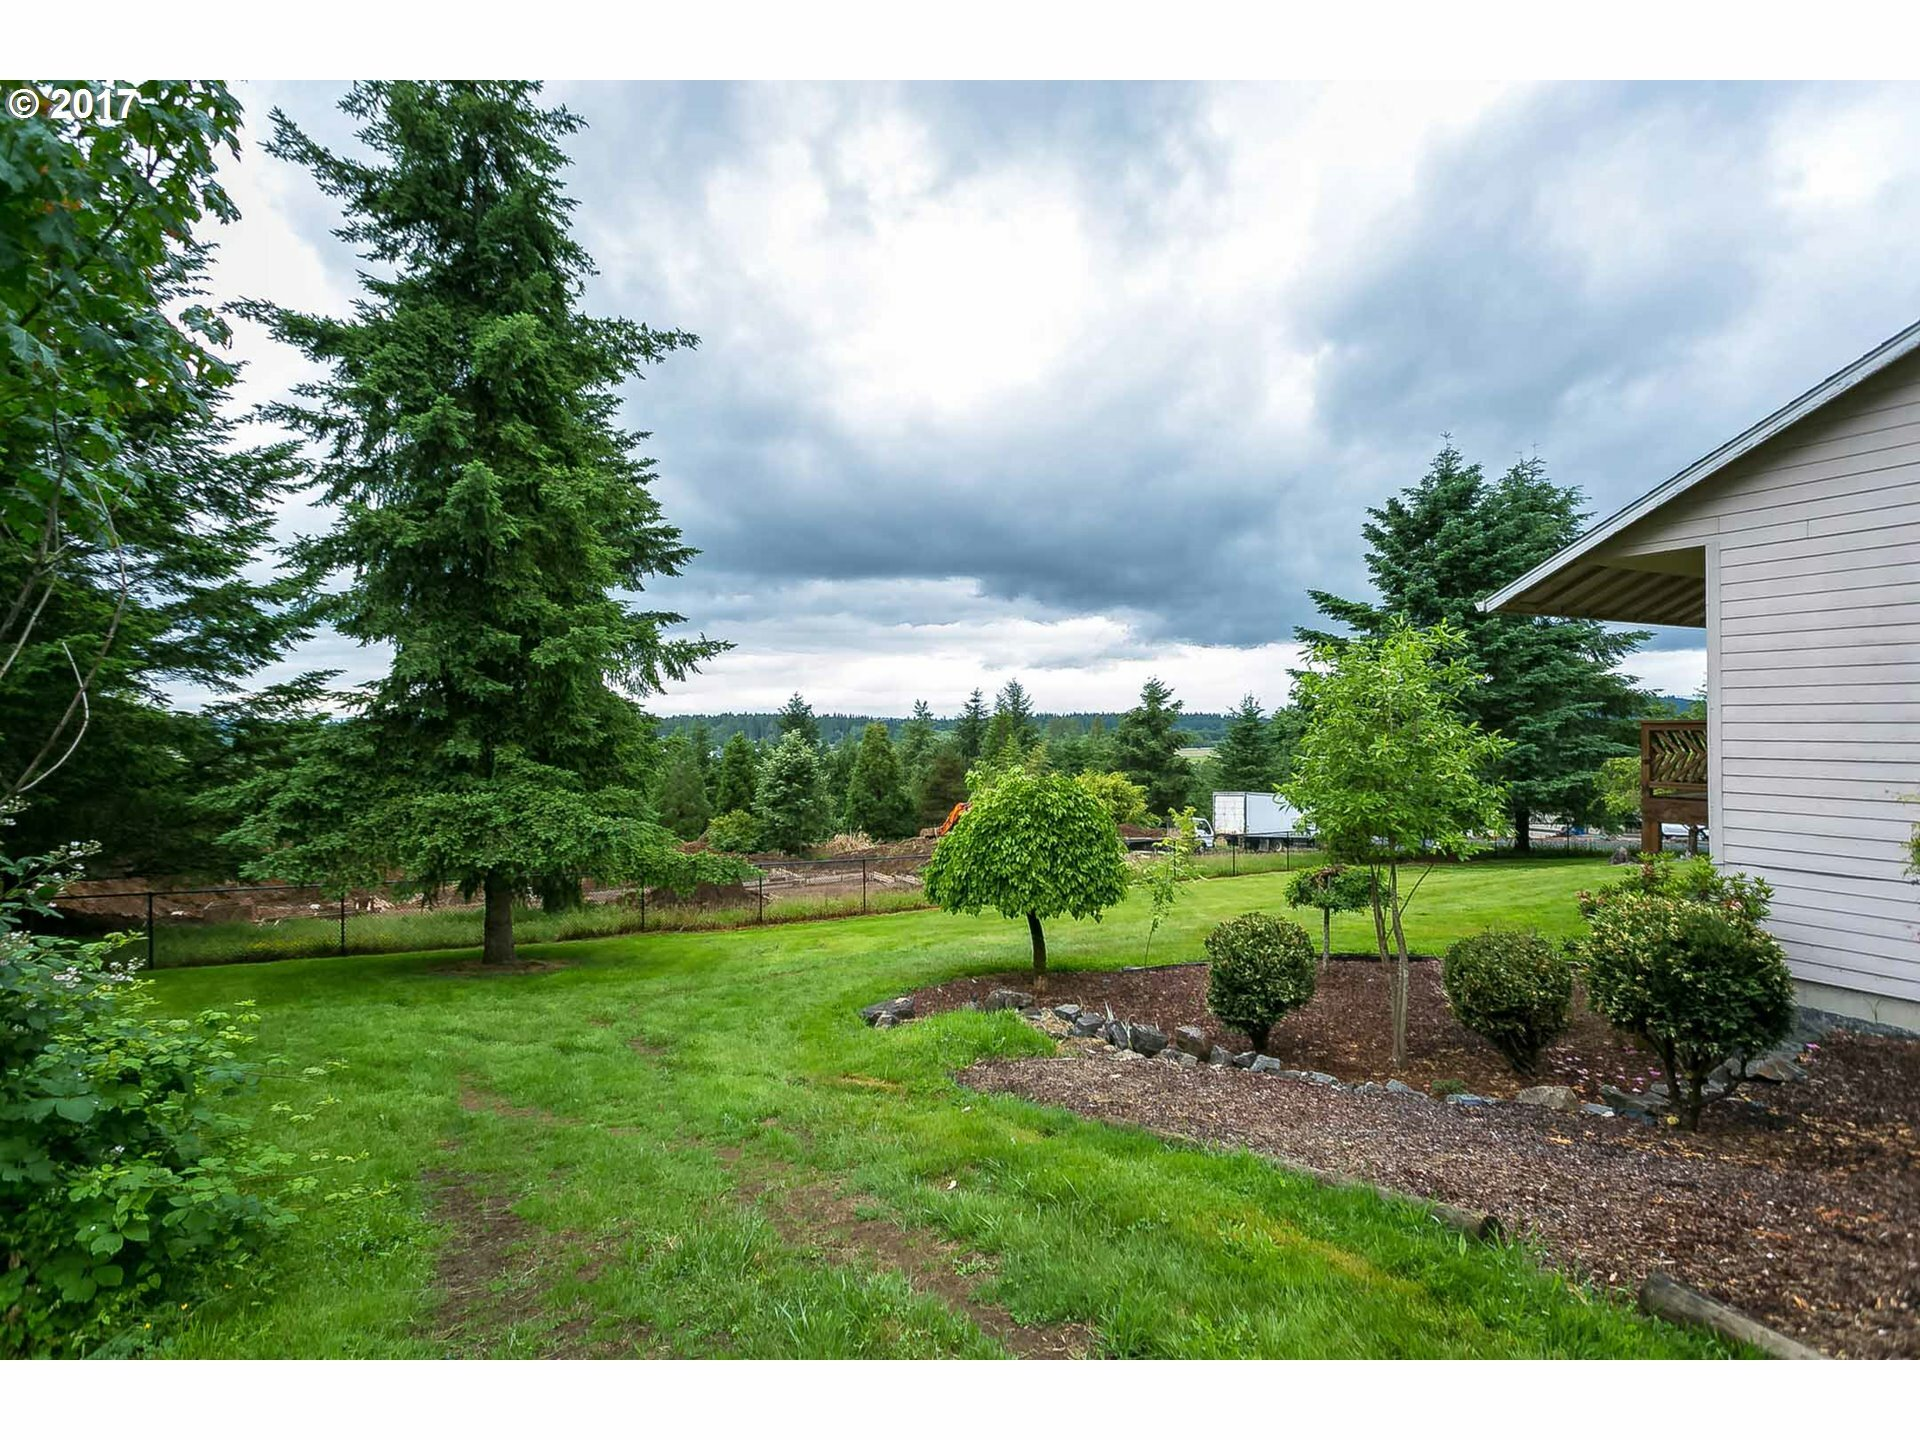 16000 Ne 185th Ave, Brush Prairie, WA - USA (photo 3)